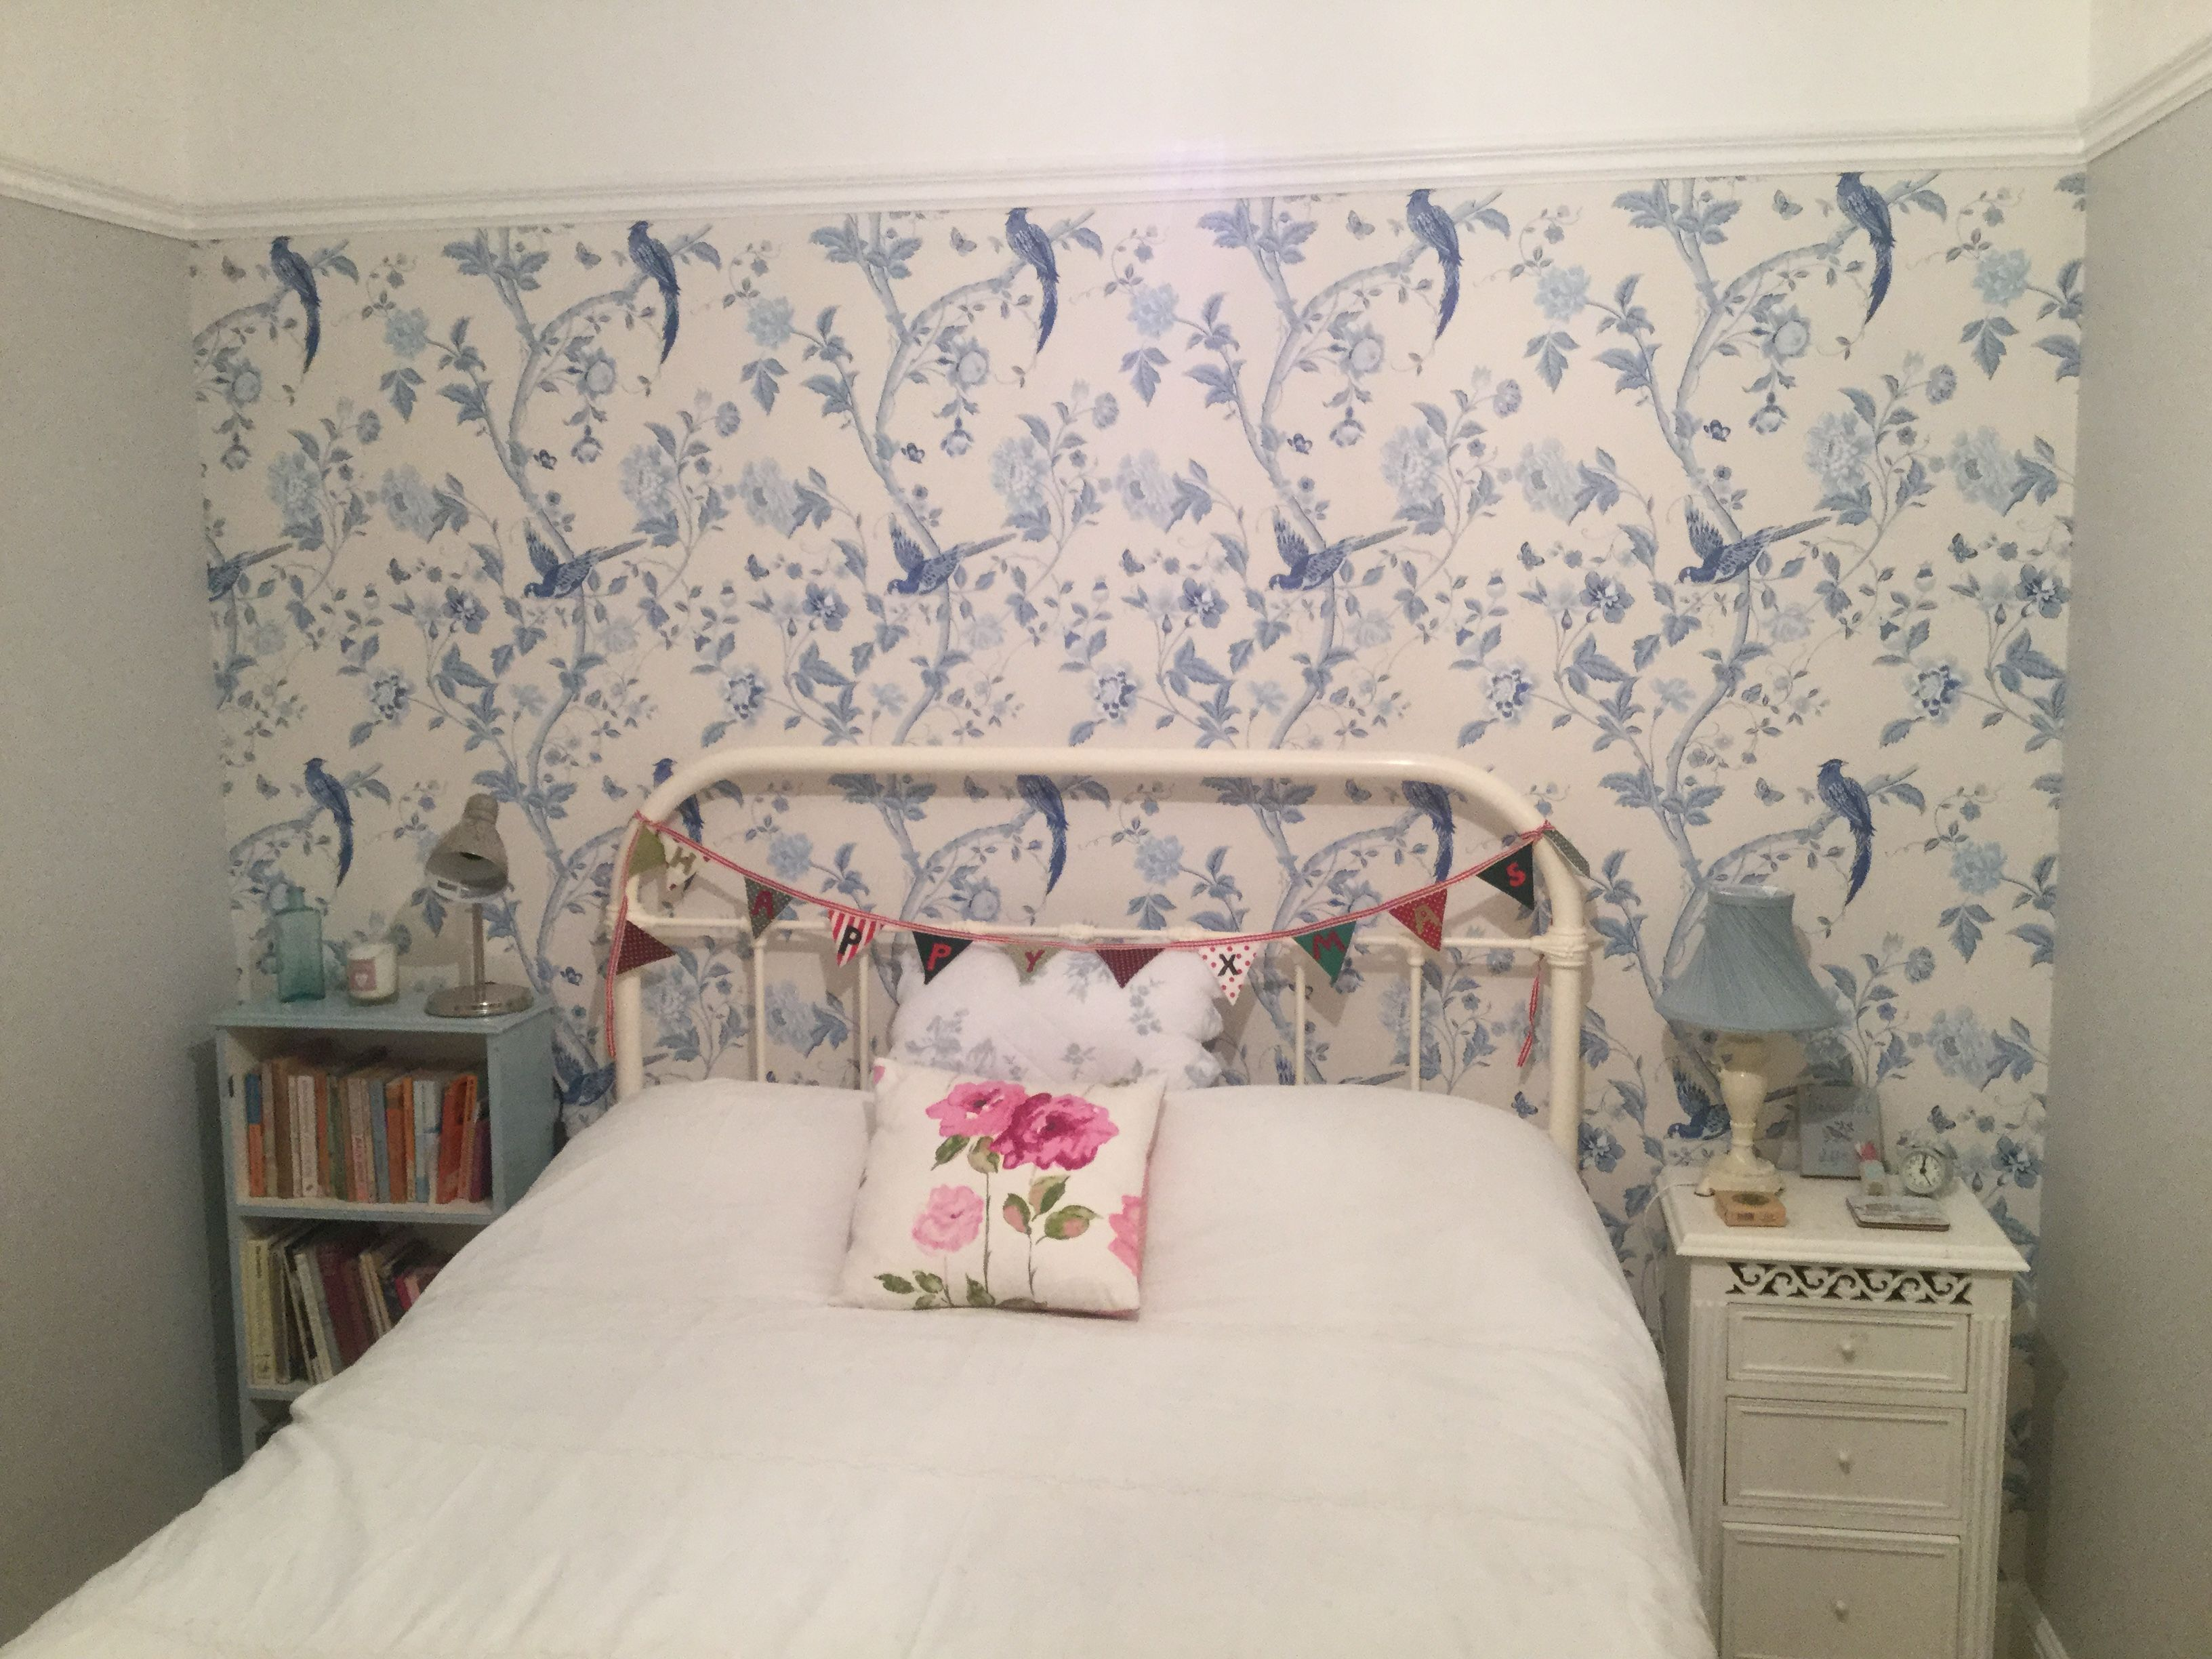 Floral Wallpaper Bedroom Ideas living room list of things design